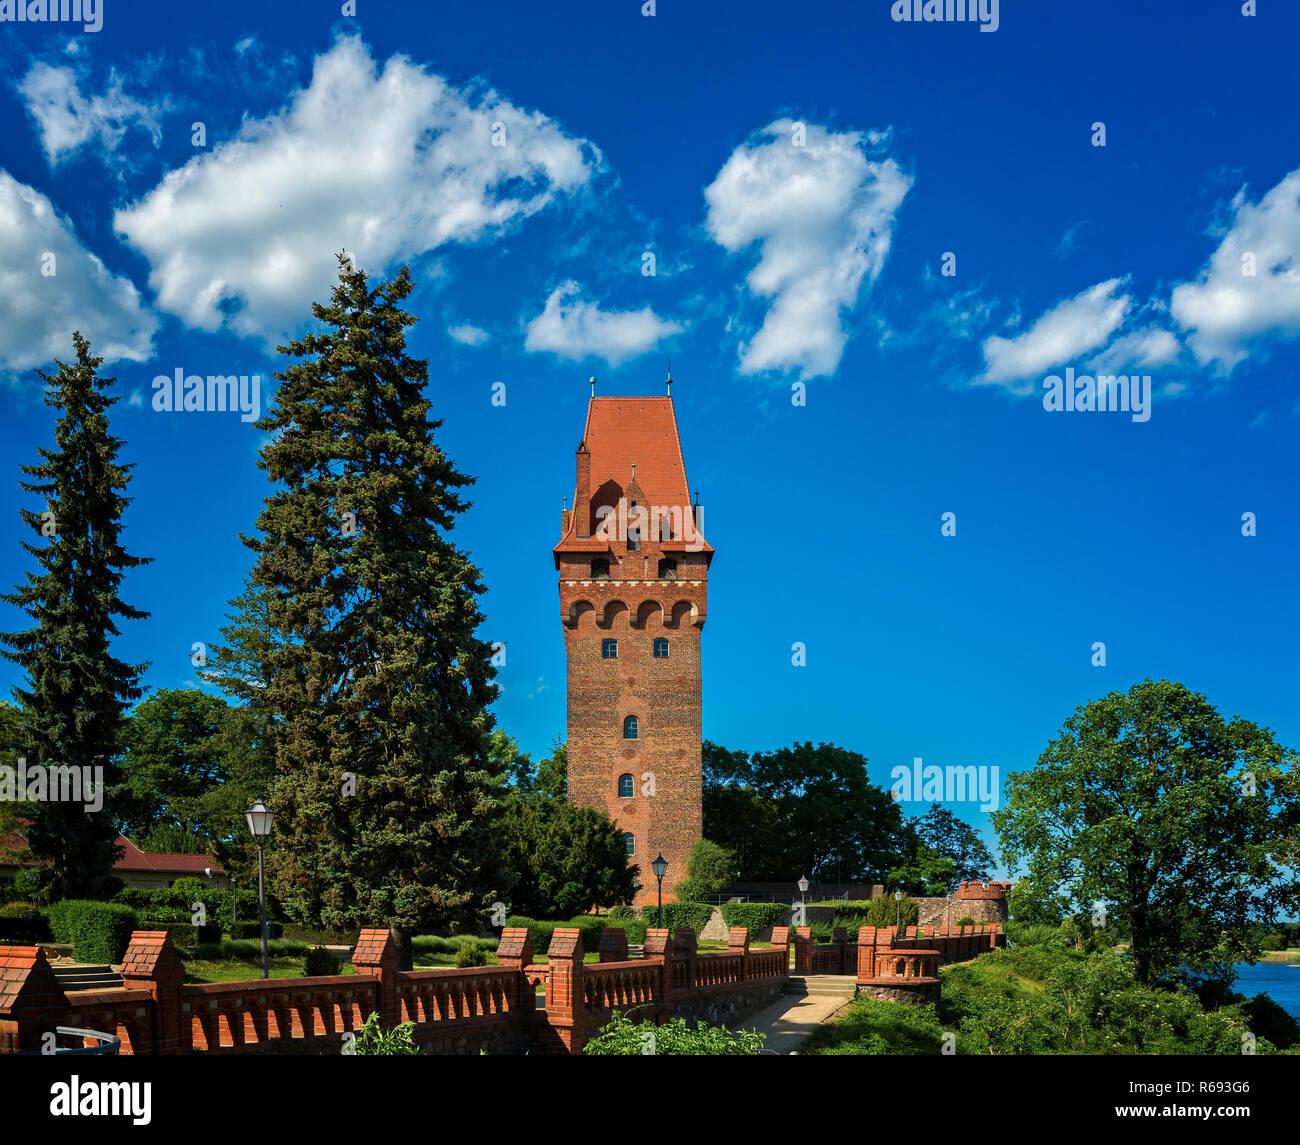 Capitol Tower Of The Castle In Tangermünde - Stock Image